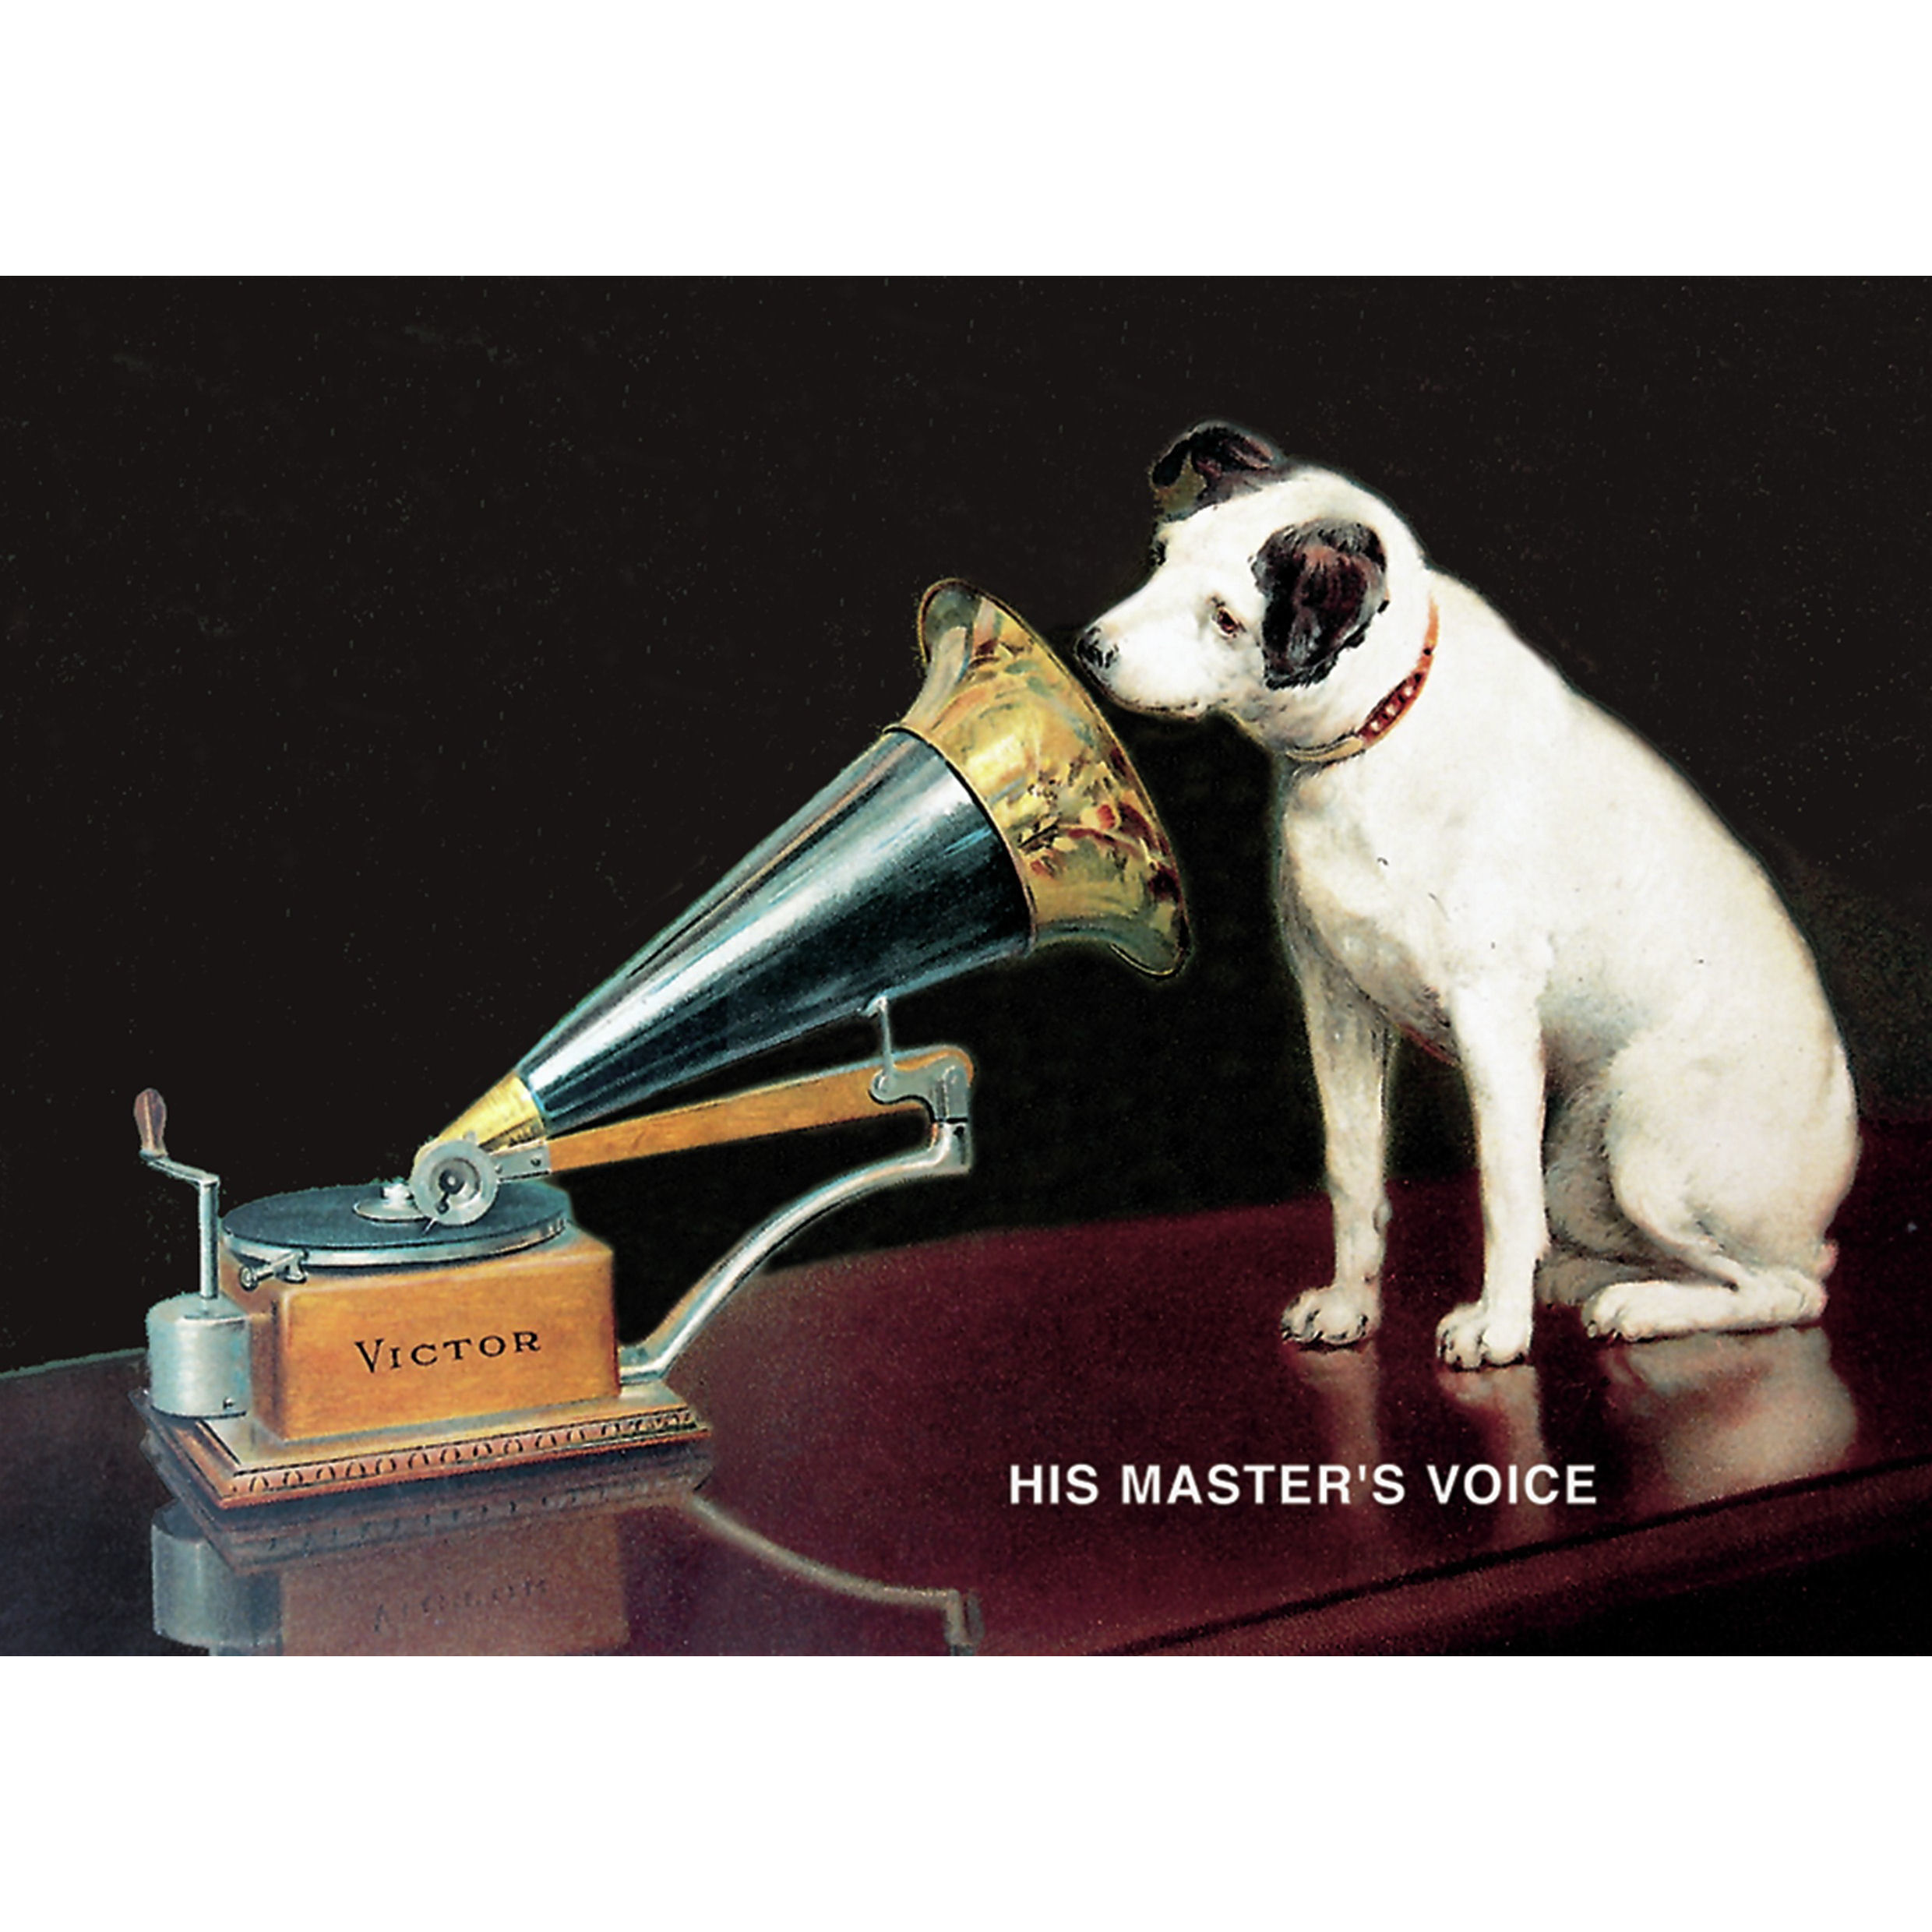 NEW HMV HIS MASTERS VOICE RETRO POSTCARD OFFICIAL VINTAGE IMAGE OPIE NIPPER DOG